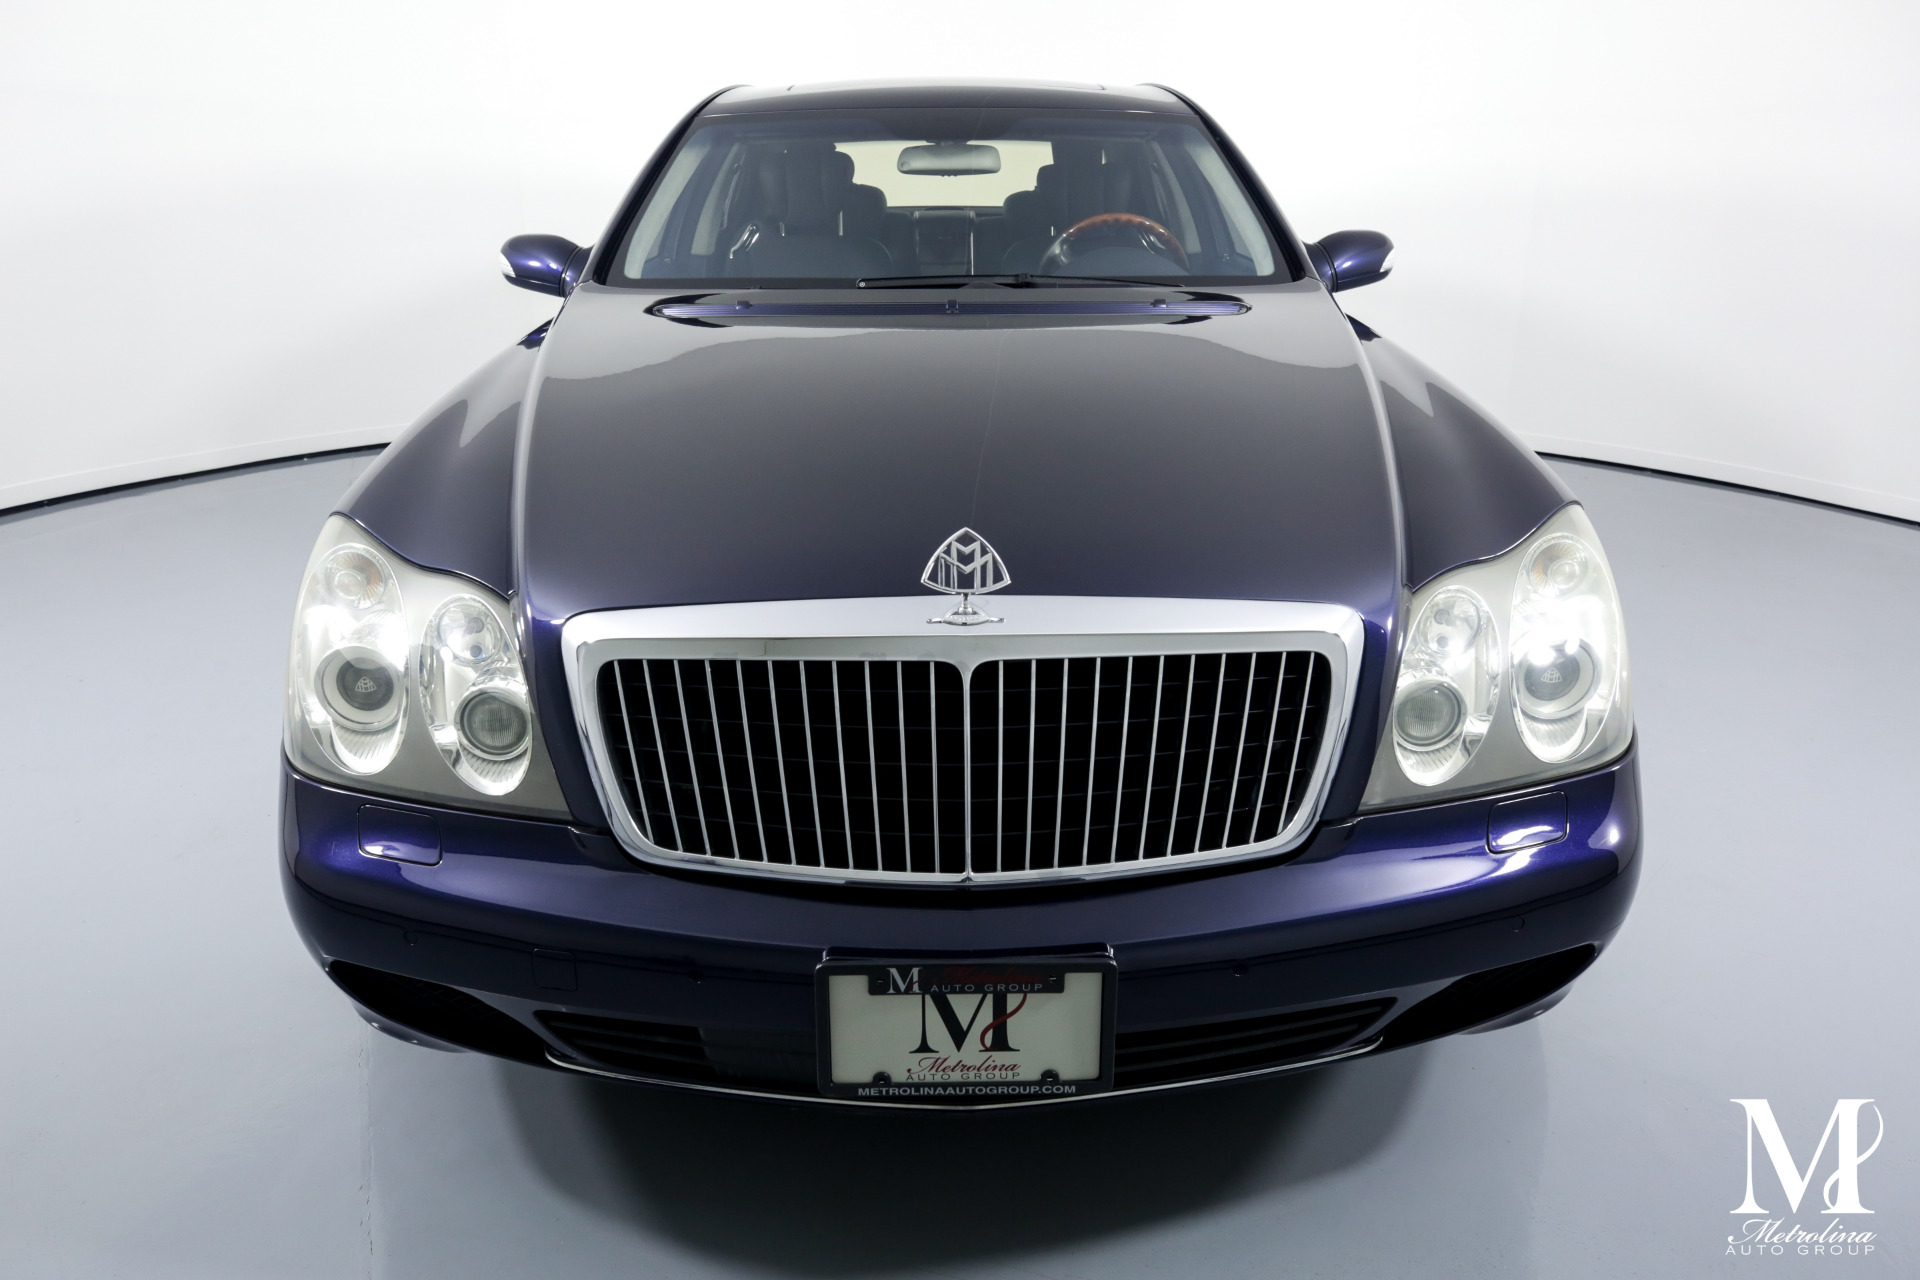 Used 2004 Maybach 57 for sale Sold at Metrolina Auto Group in Charlotte NC 28217 - 3